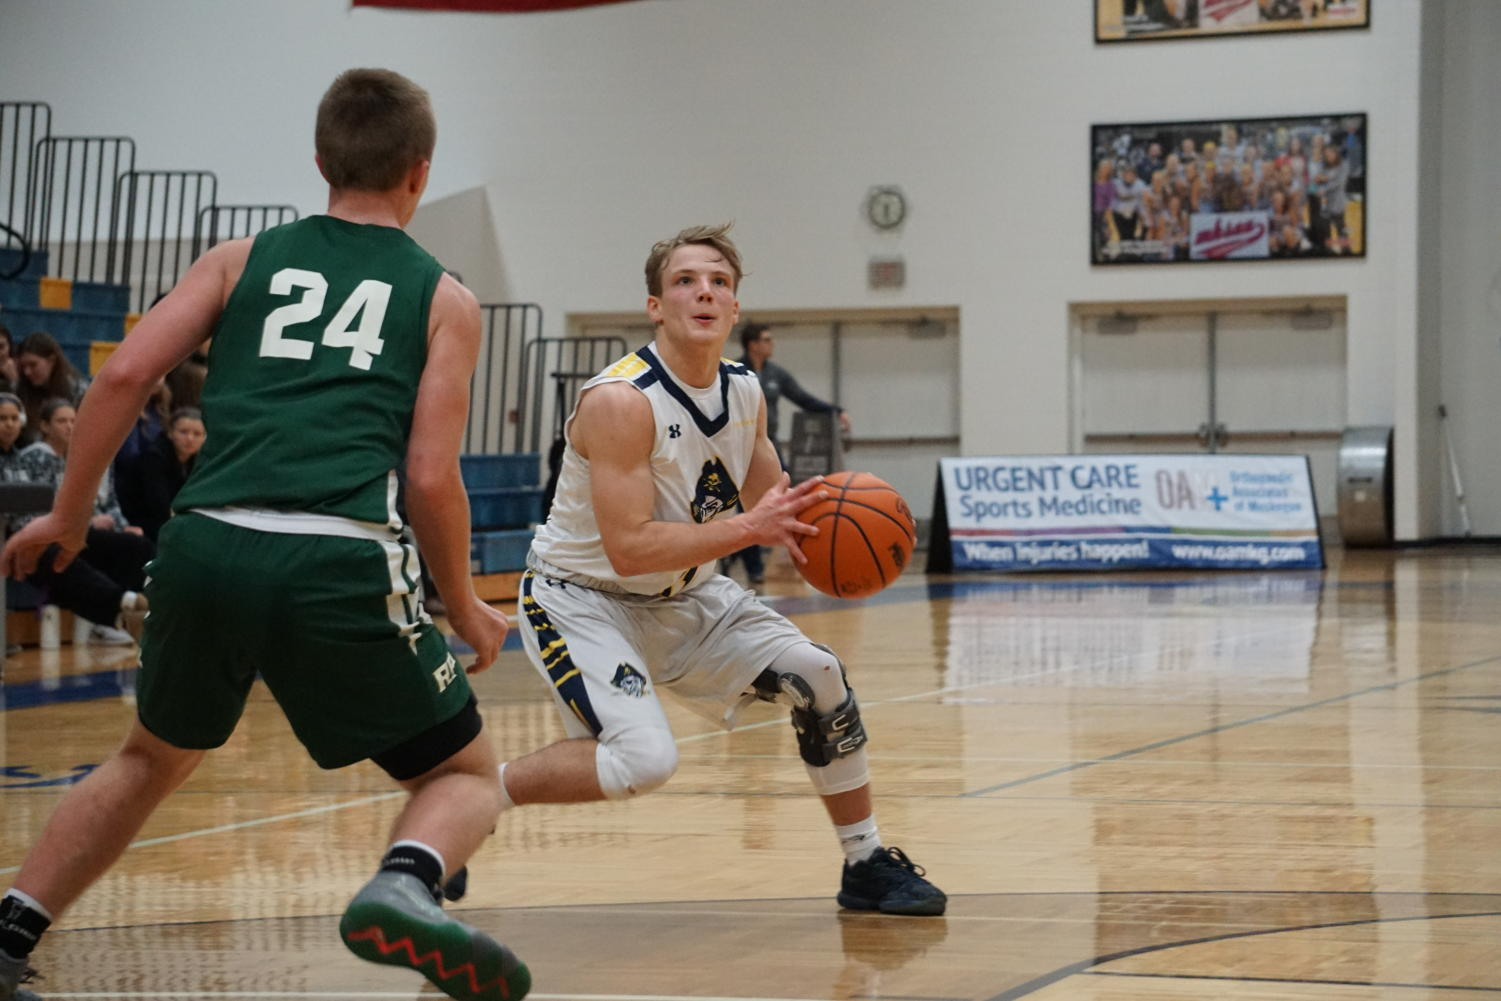 Senior point guard Casey Constant works to create space in order to find an open look for a shot against Rocket defender.